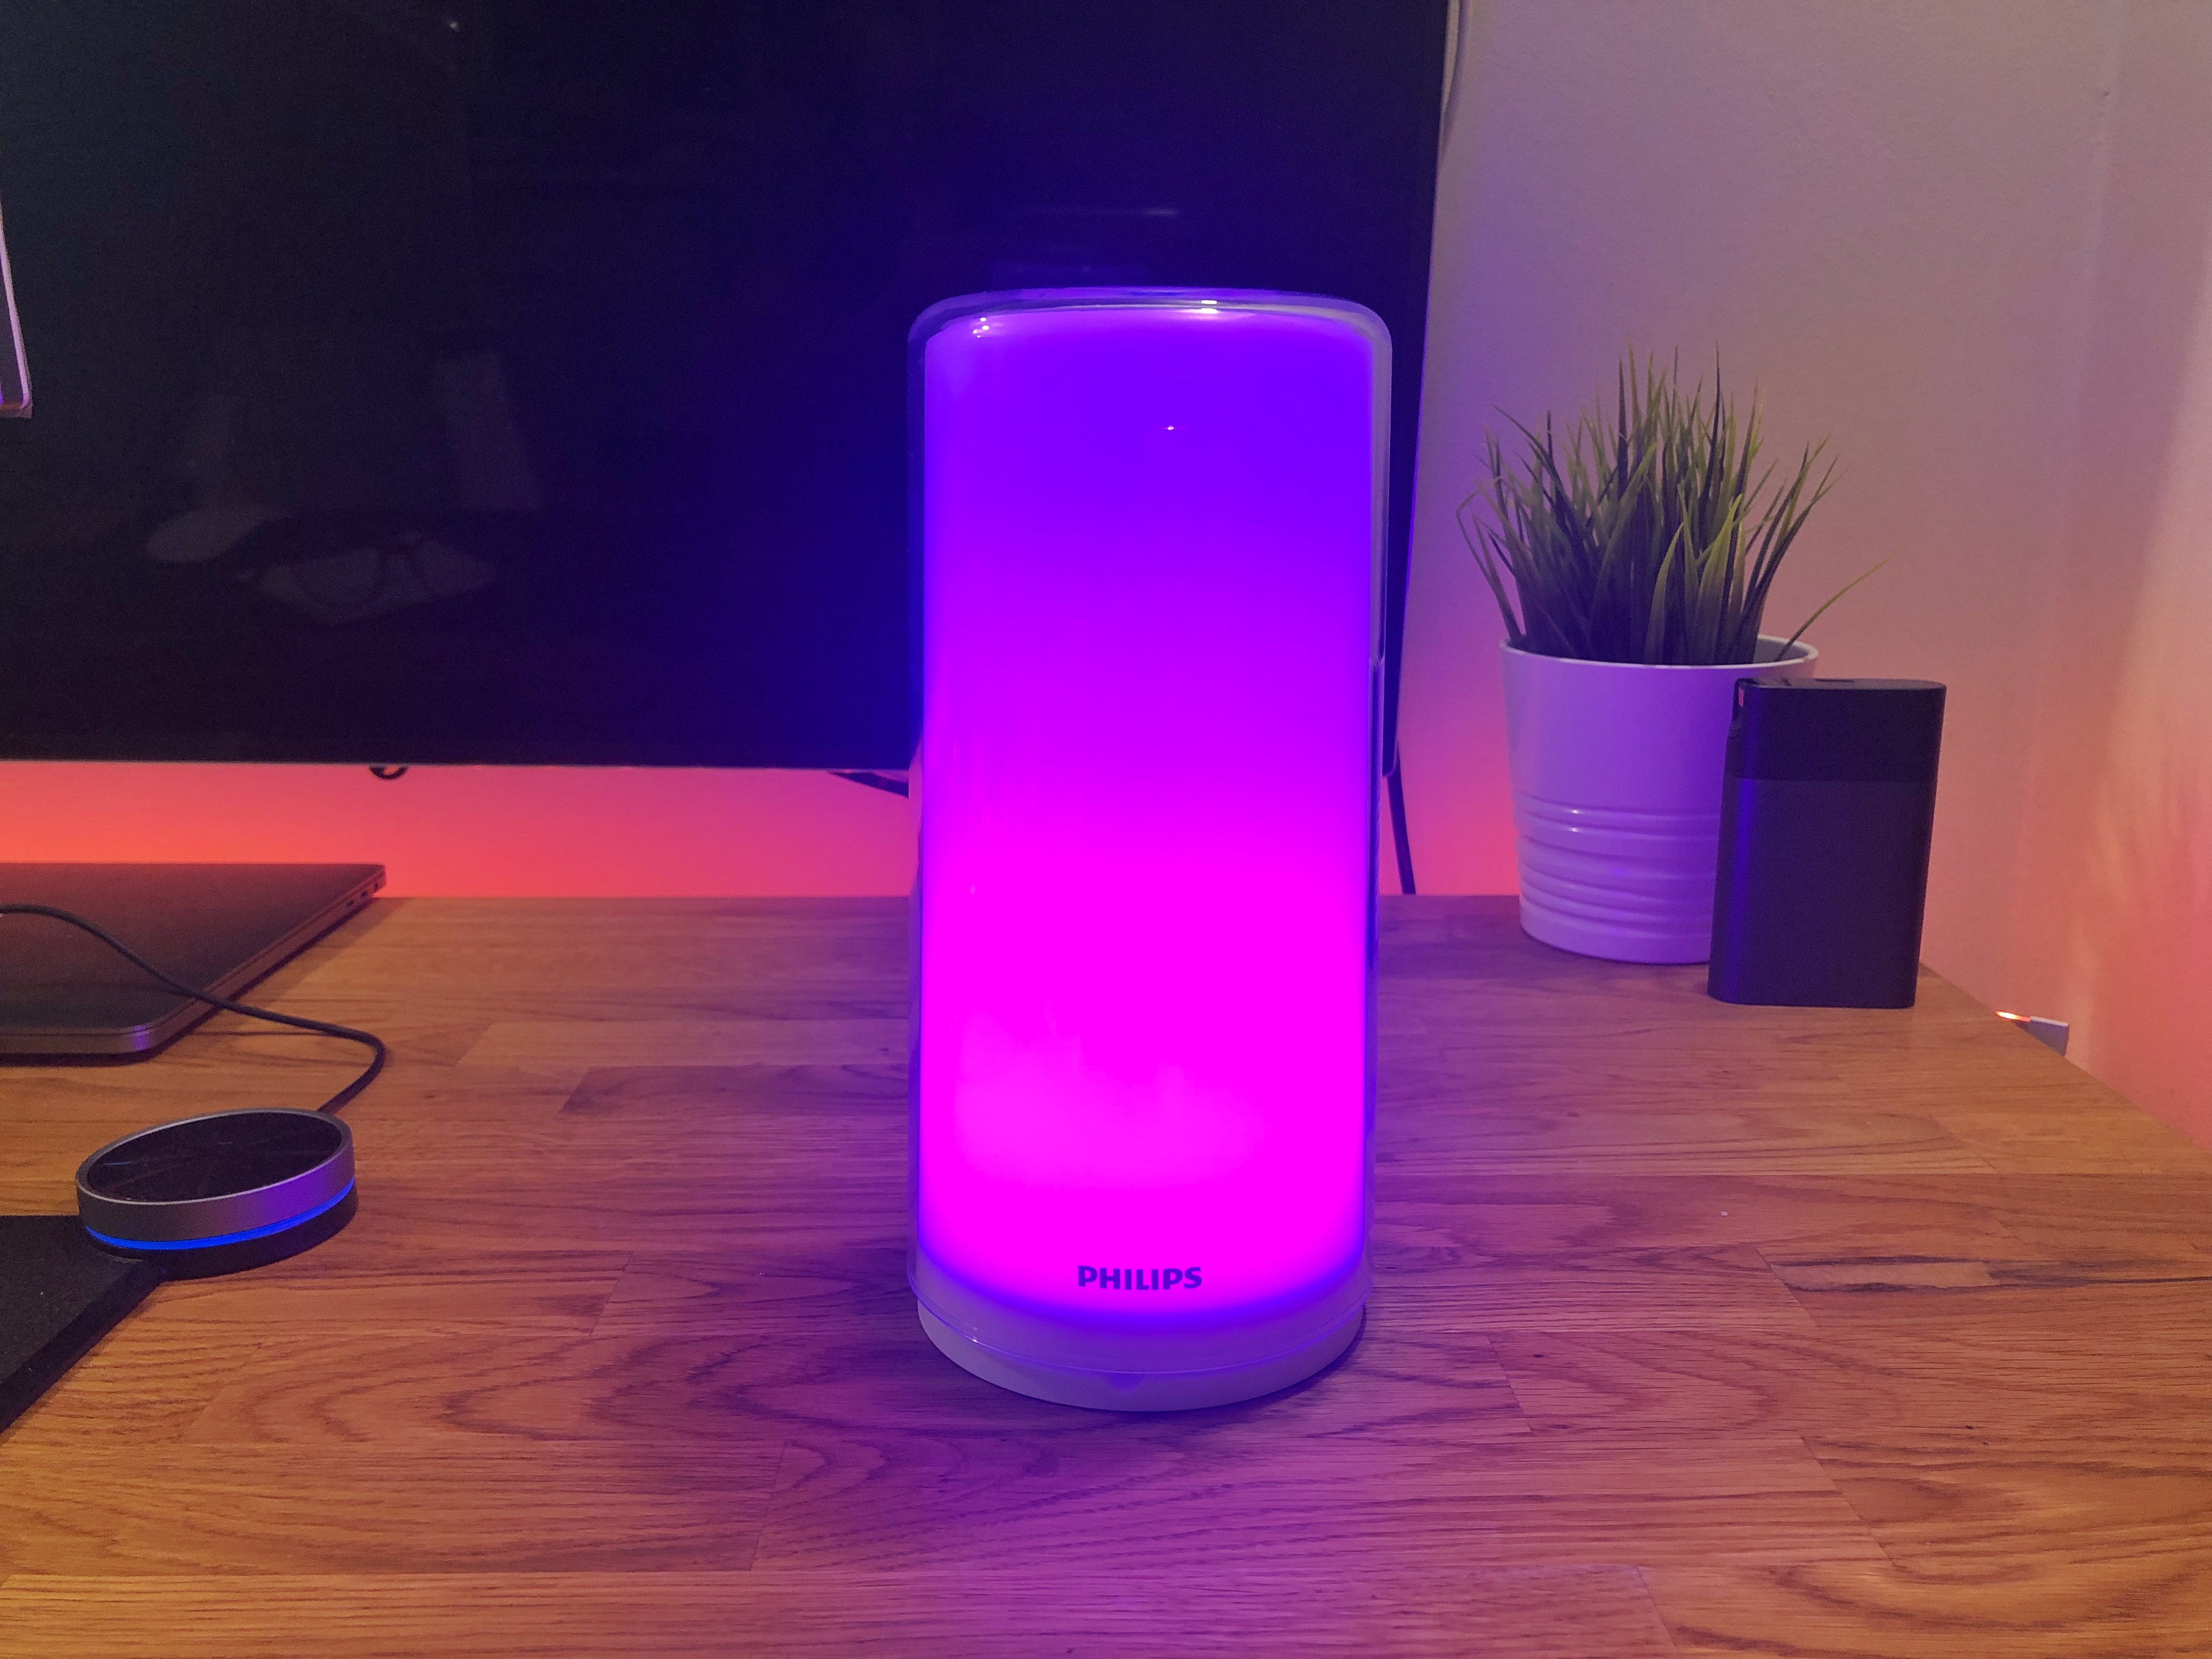 Xiaomi PHILIPS Zhirui Smart Nachttischlampe